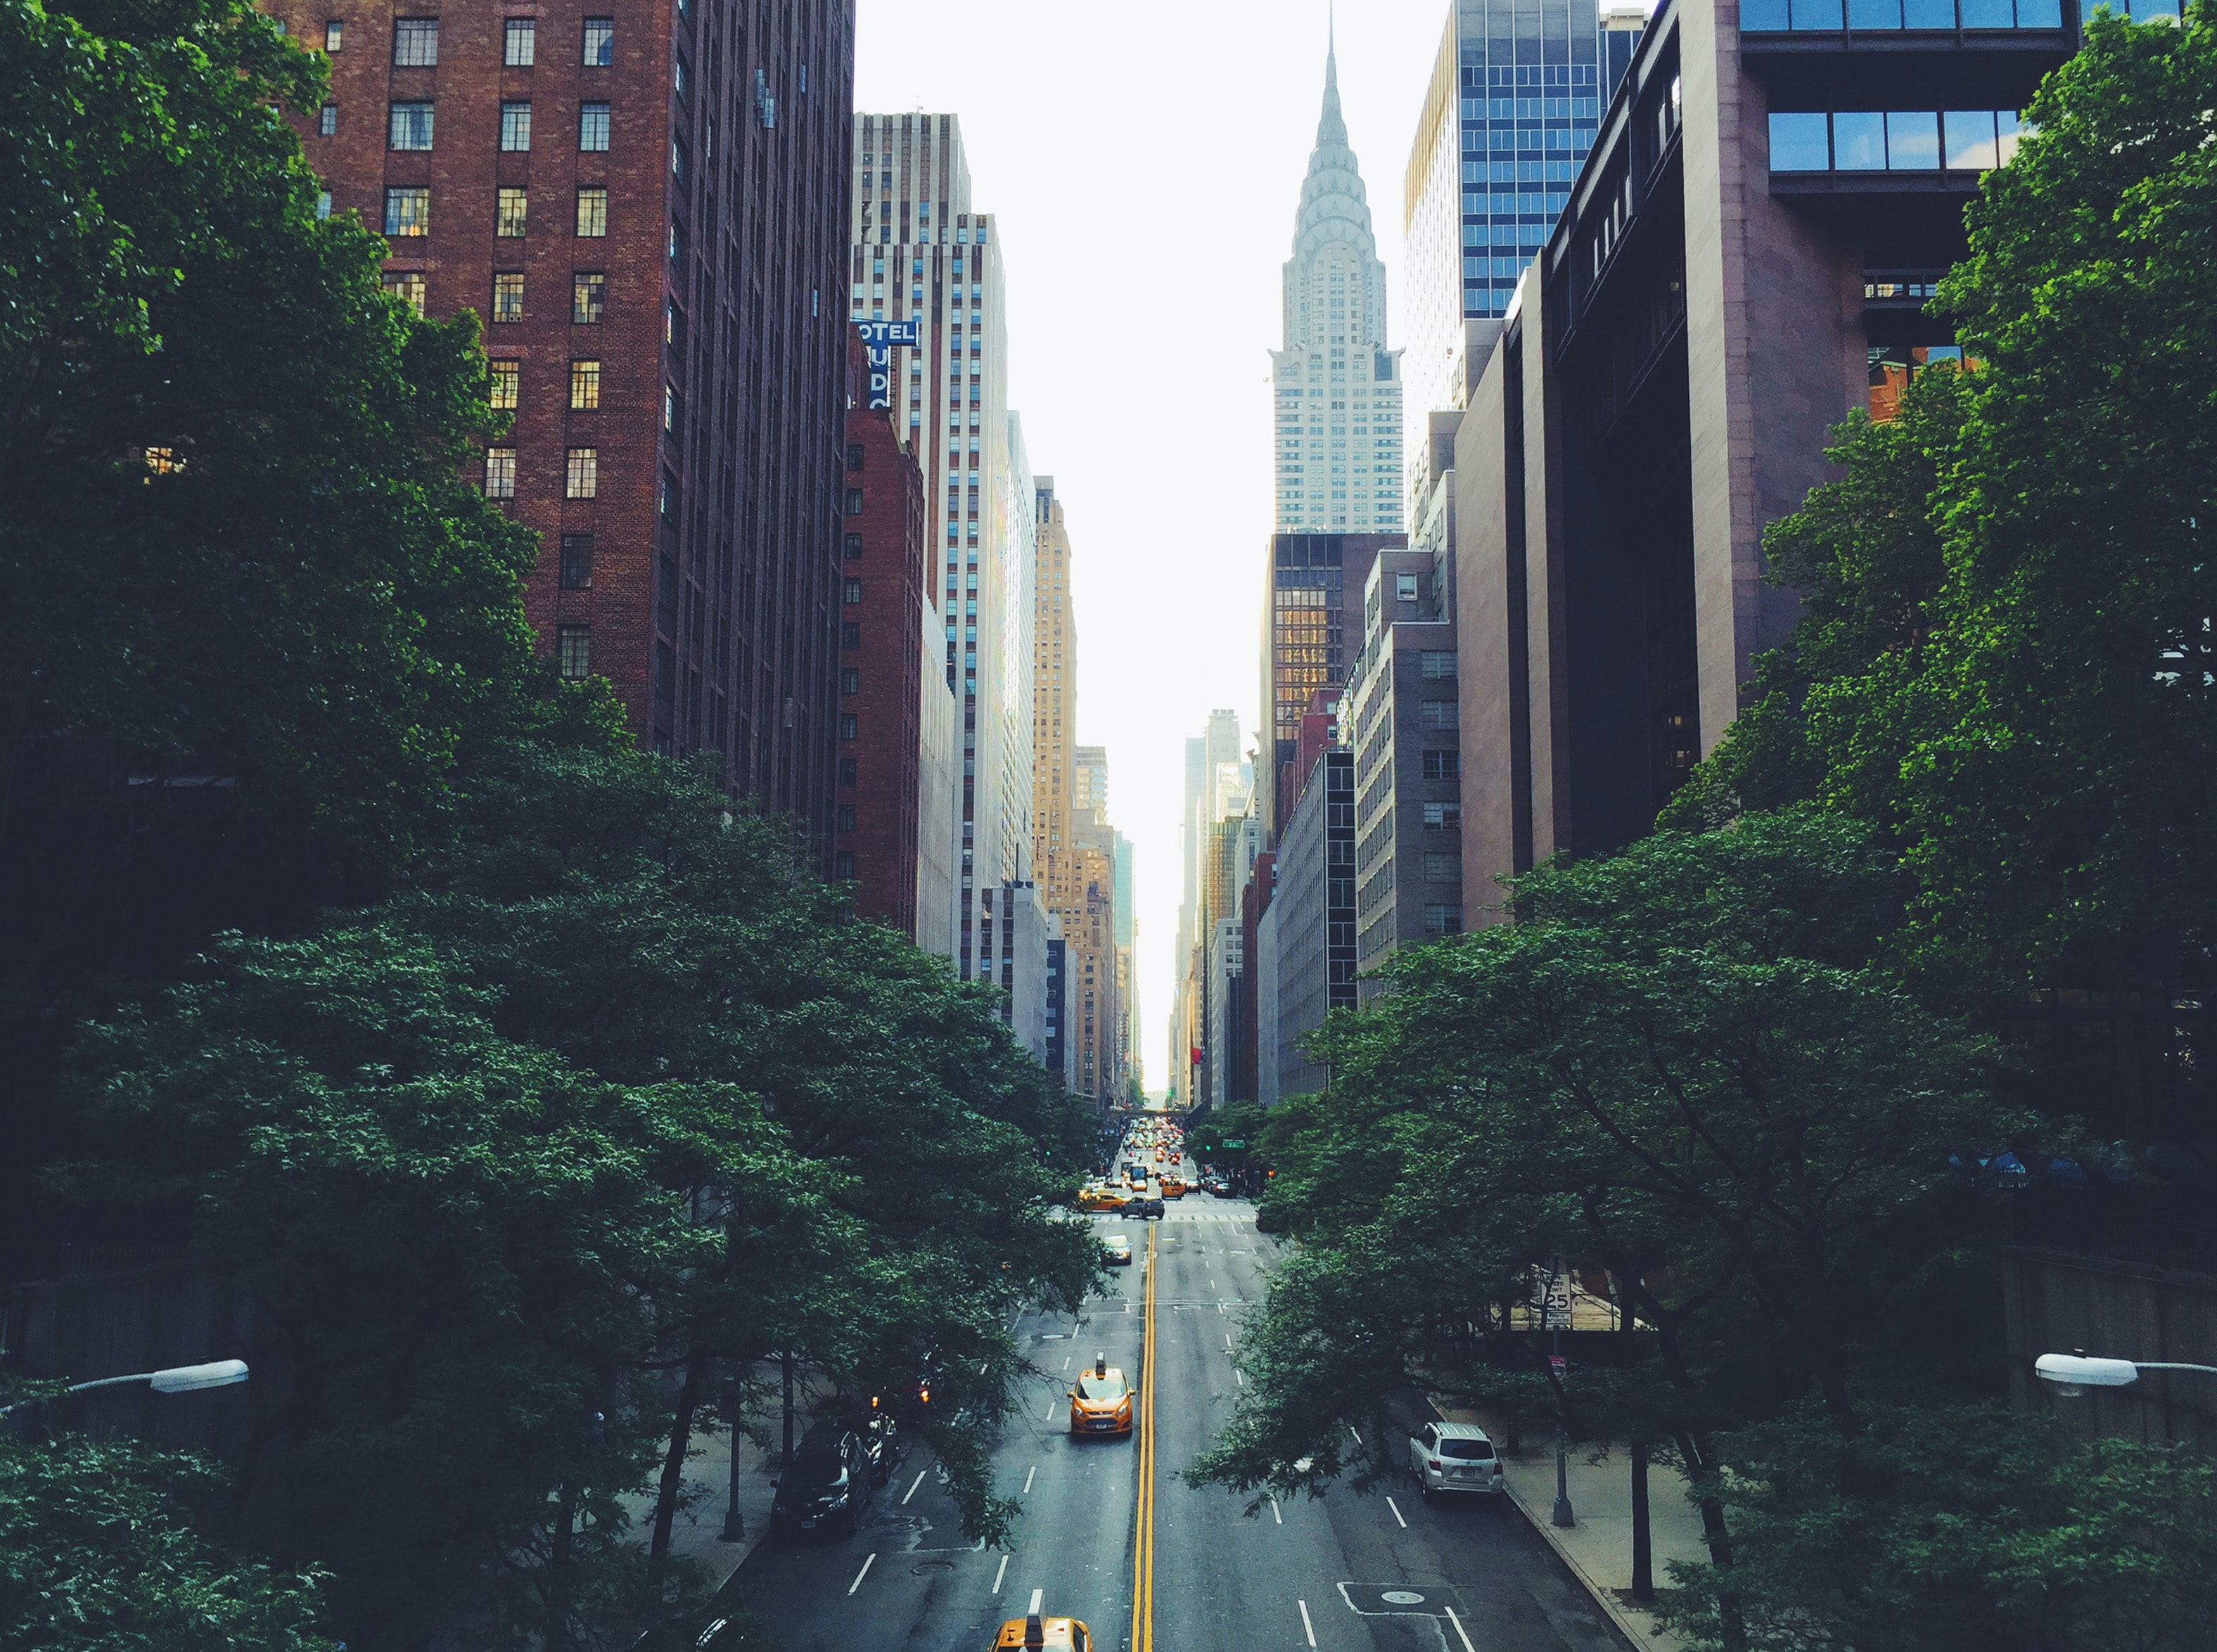 A New York City street in Midtown with trees and skyscrapers on either side